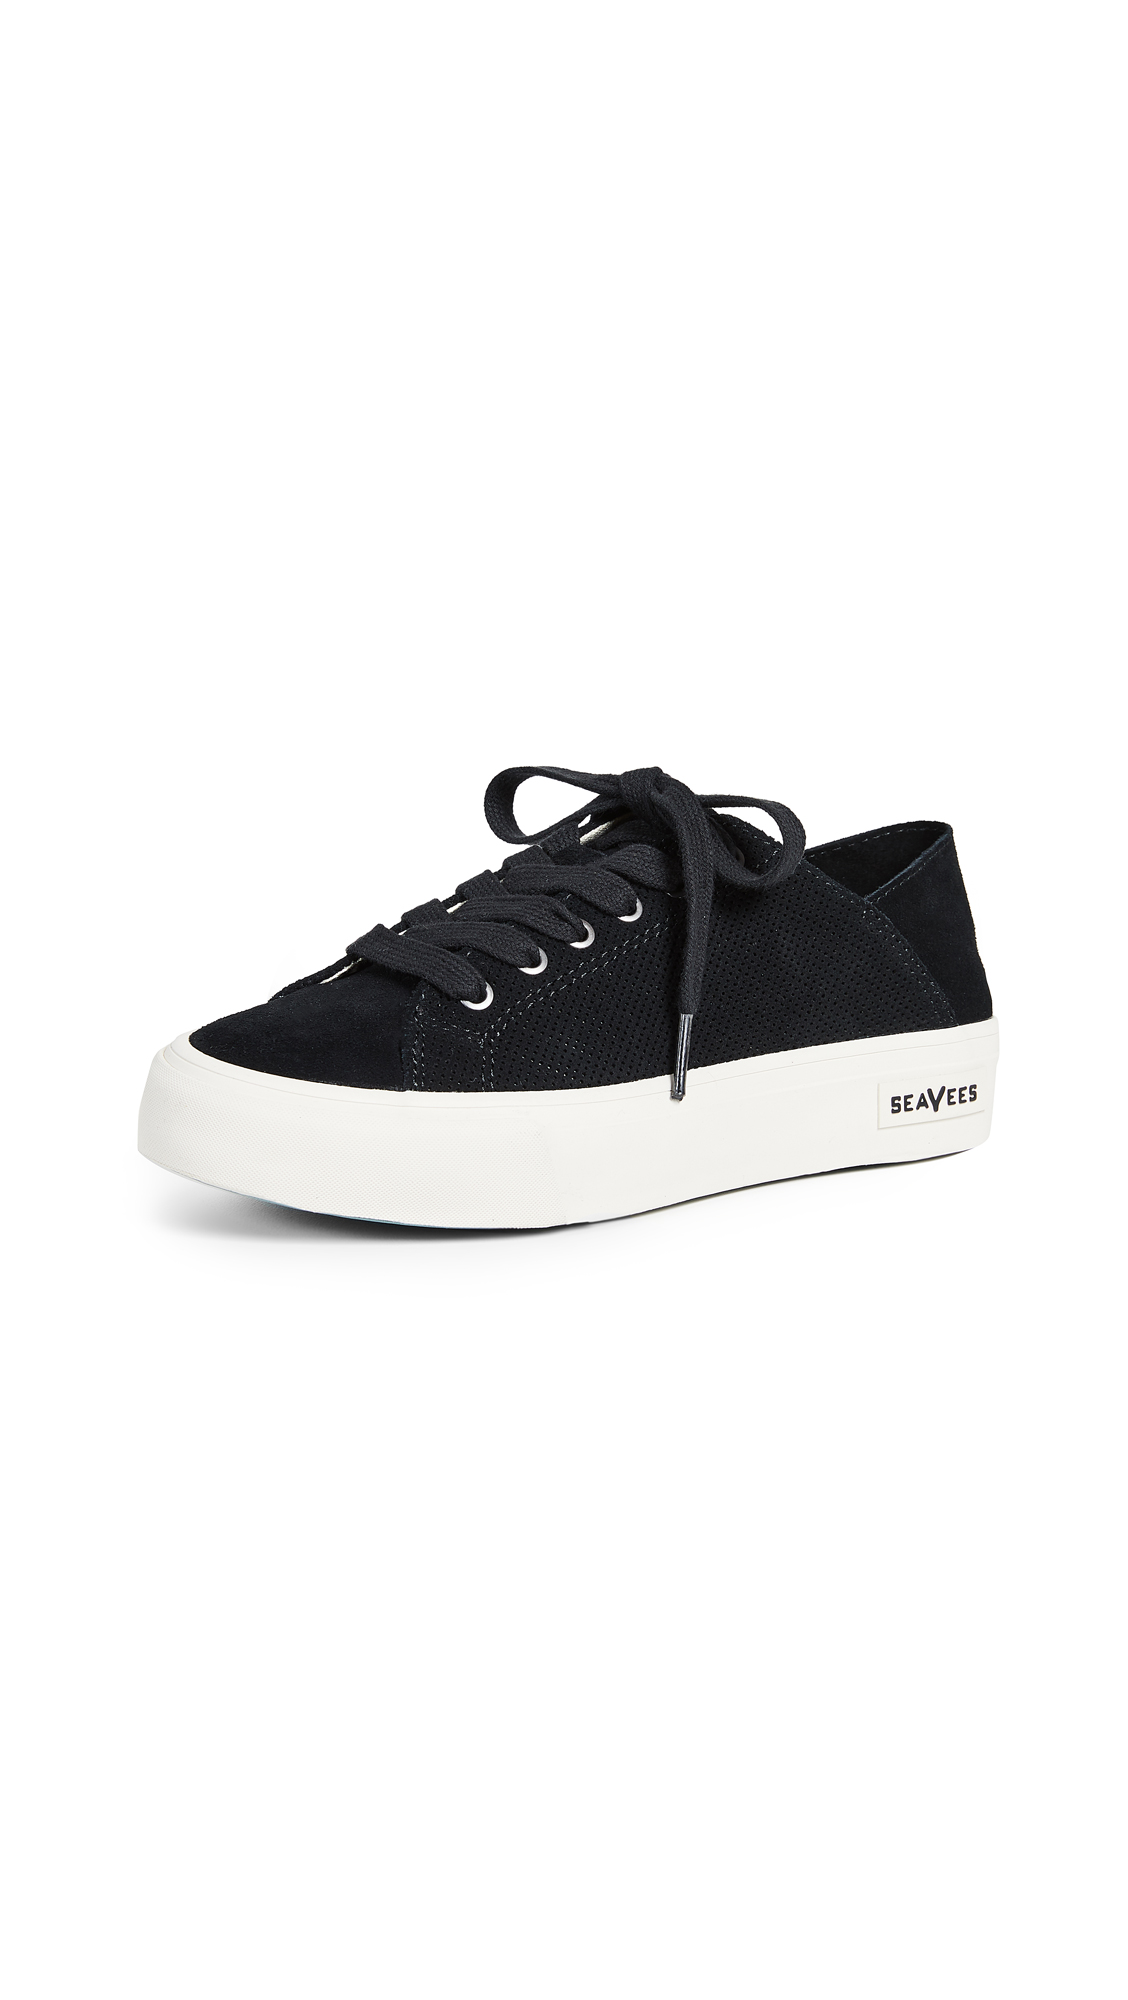 Photo of SeaVees Sausalito Convertible Sneakers online shoes sales